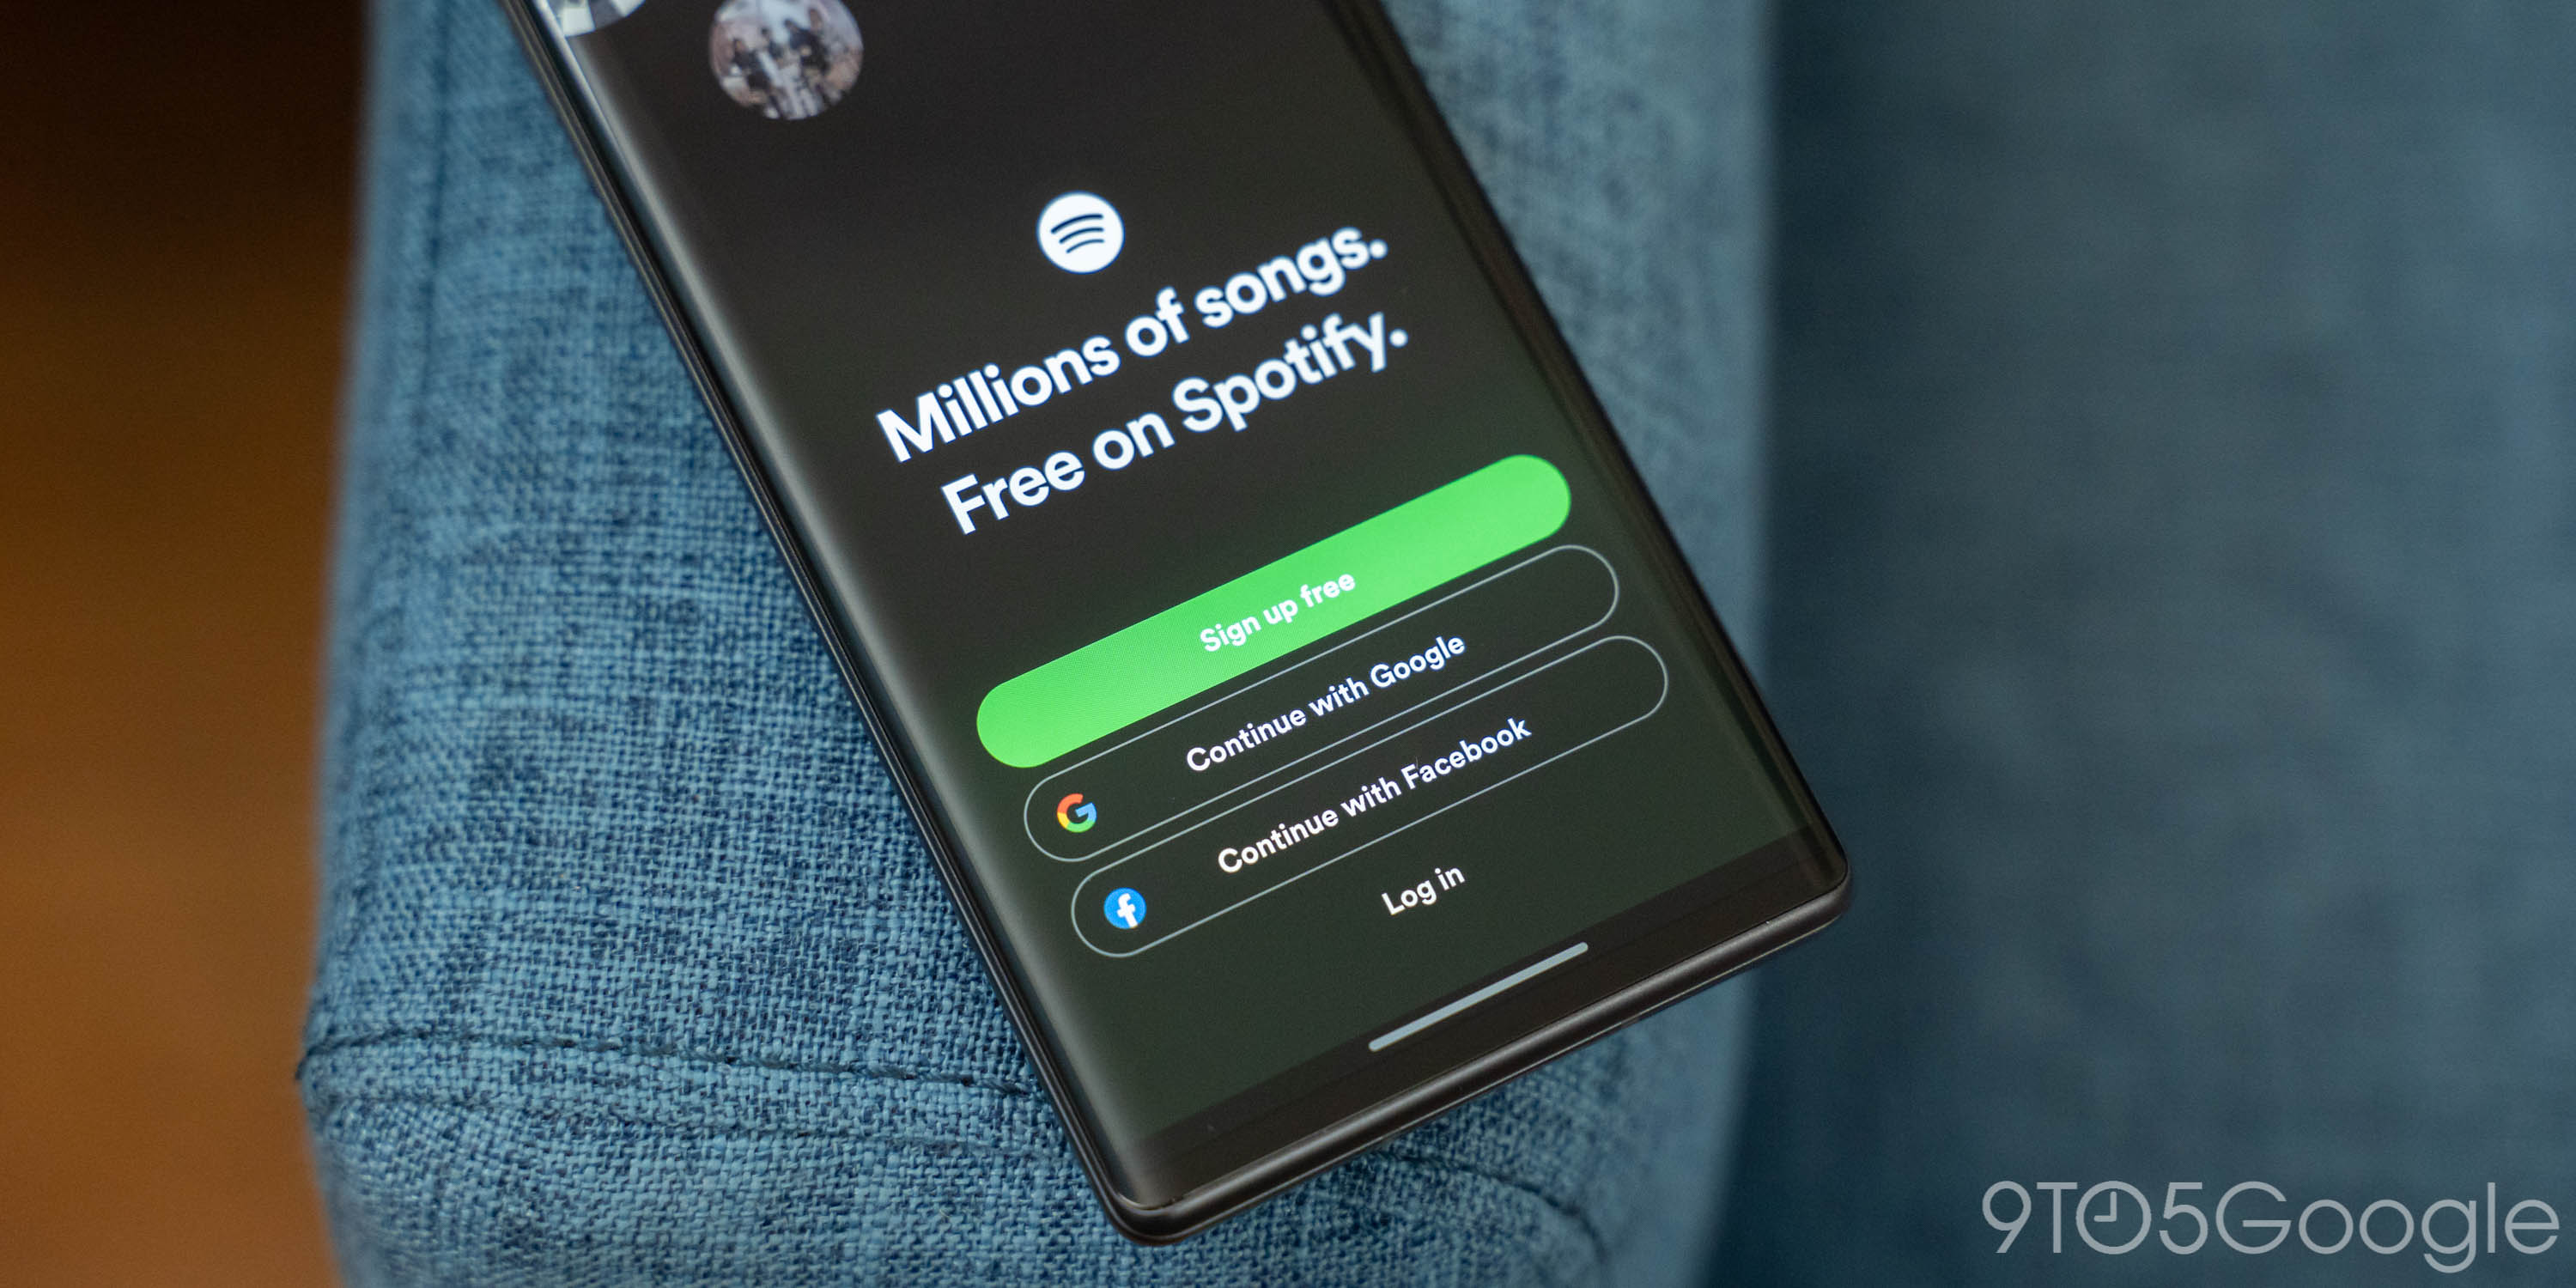 Spotify Adds Support For Google Login 9to5google